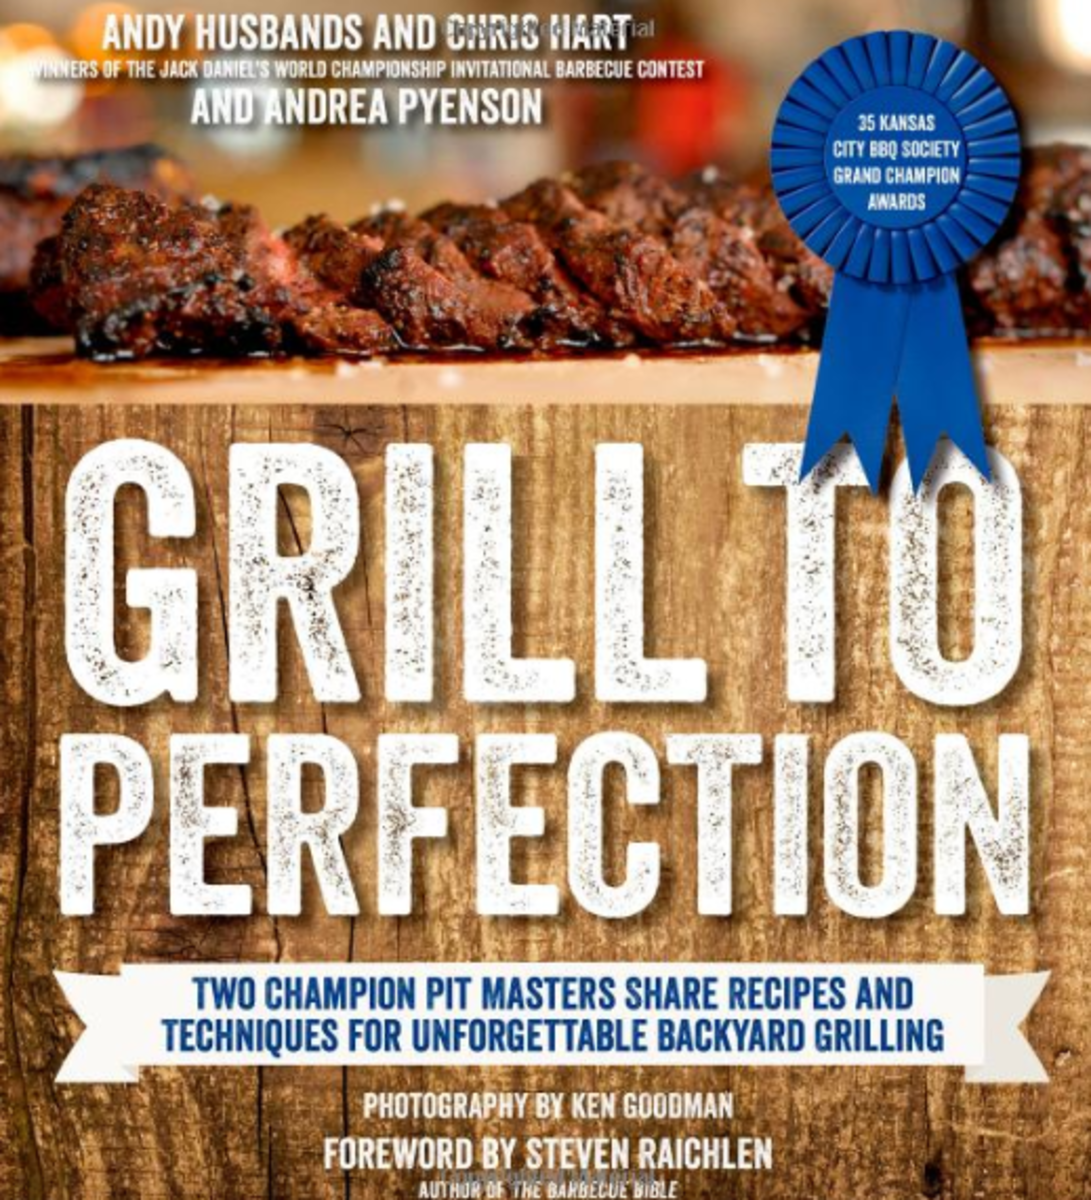 Grilled to Perfection: Two Champion Pit Masters Share Recipes and Techniques for Unforgettable Backyard Grilling